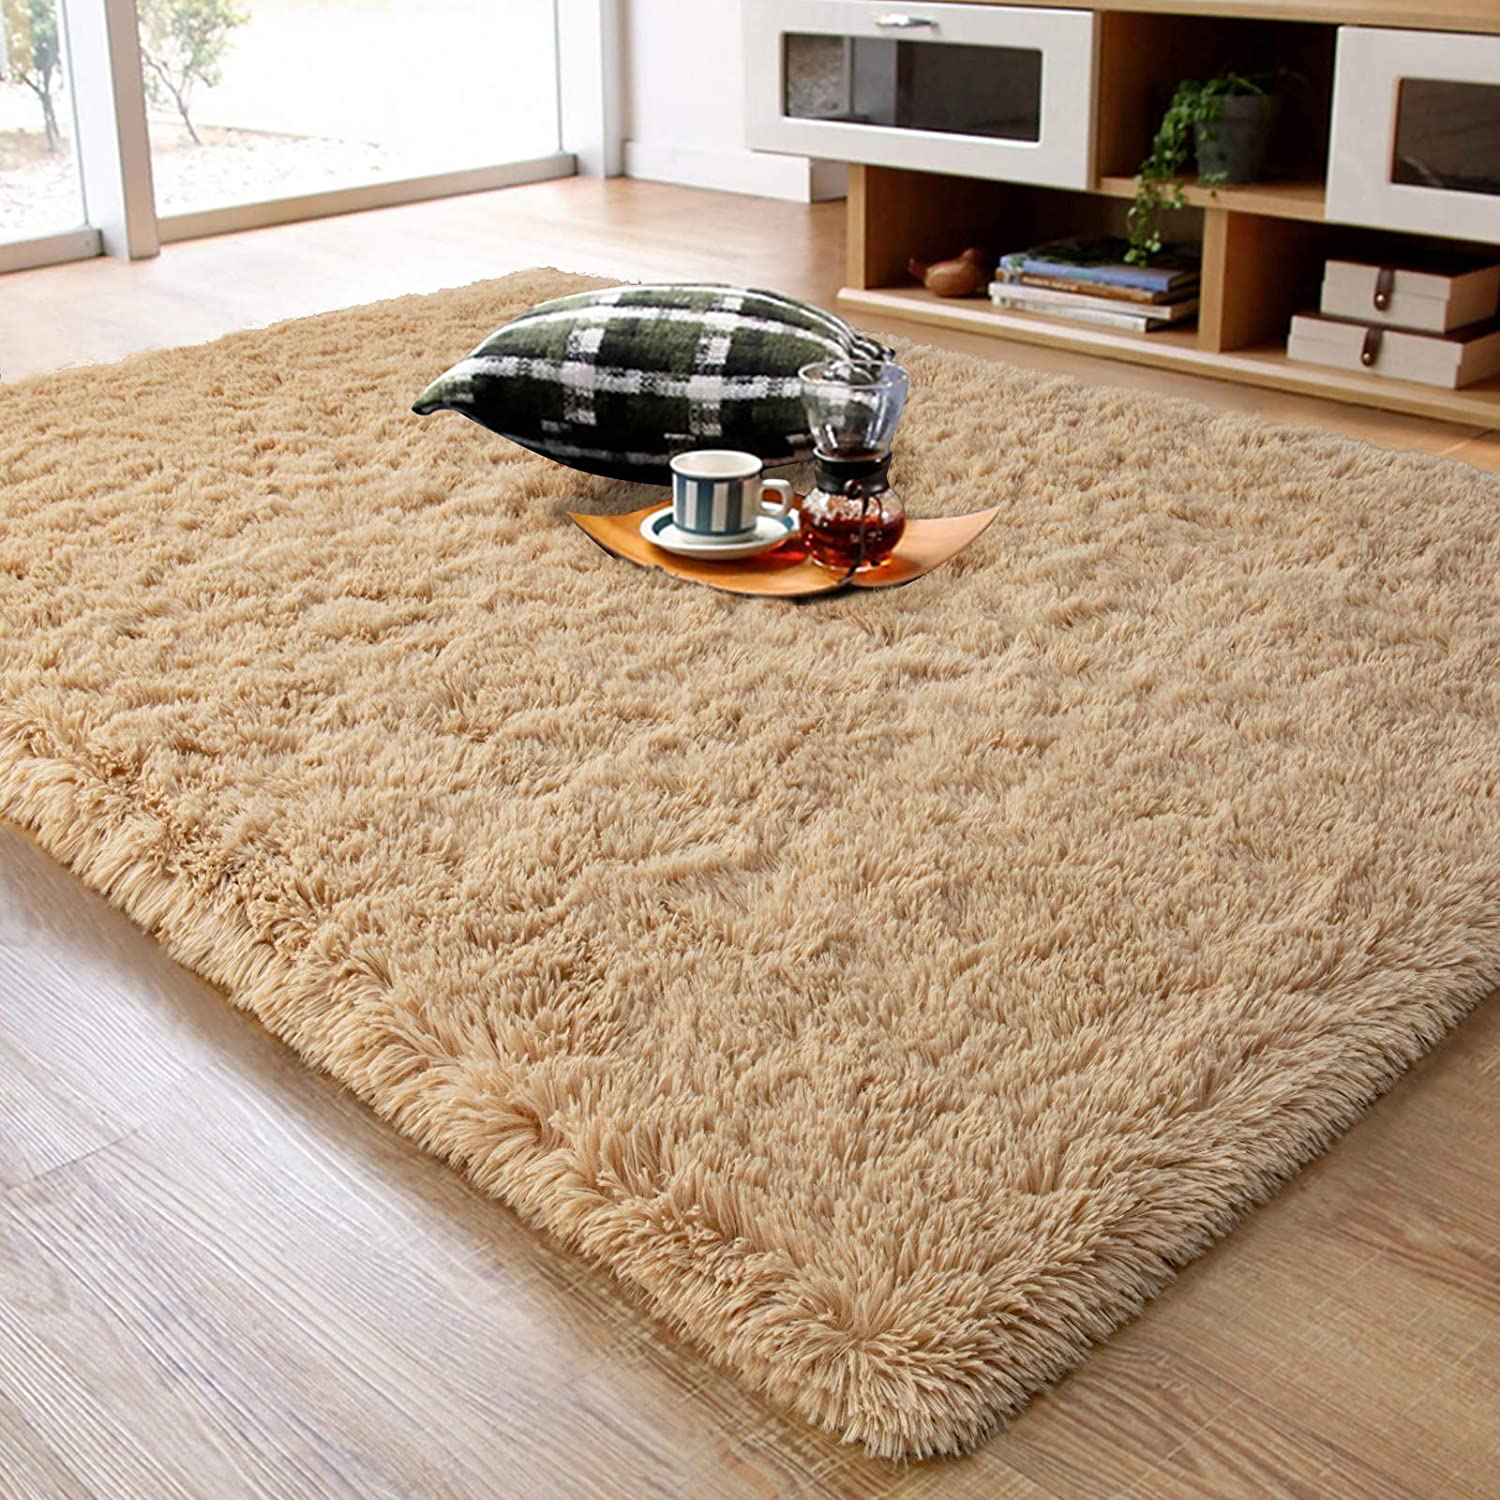 Ompaa Fluffy Luxury Rug Choice Super Soft Fuzzy Bedroom Area for Rugs Living